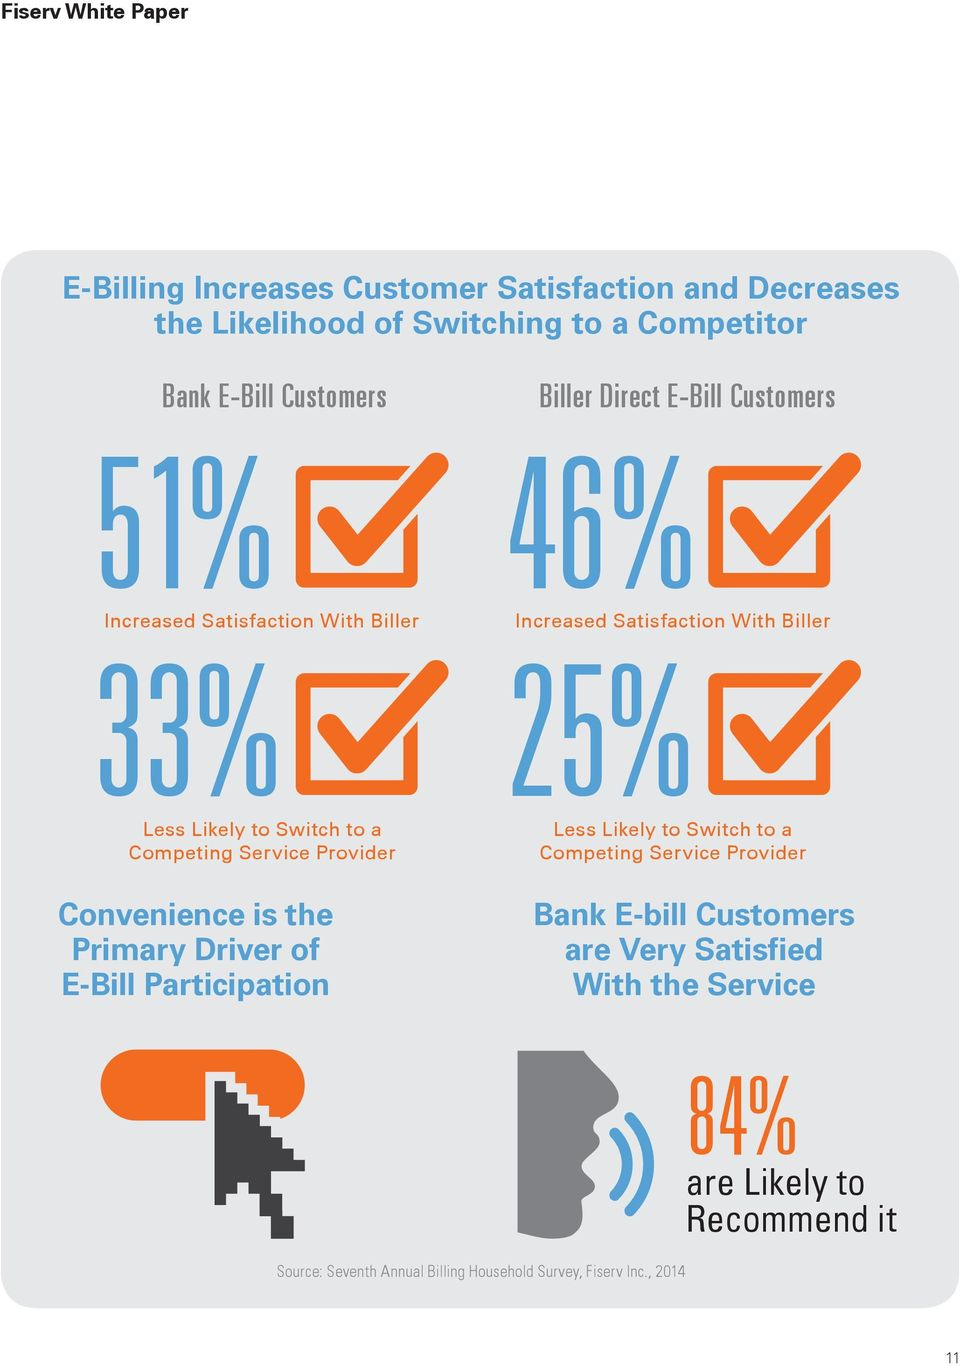 Biller Direct E-Bill Customers 46% Increased Satisfaction With Biller 25% Less Likely to Switch to a Competing Service Provider Bank E-bill